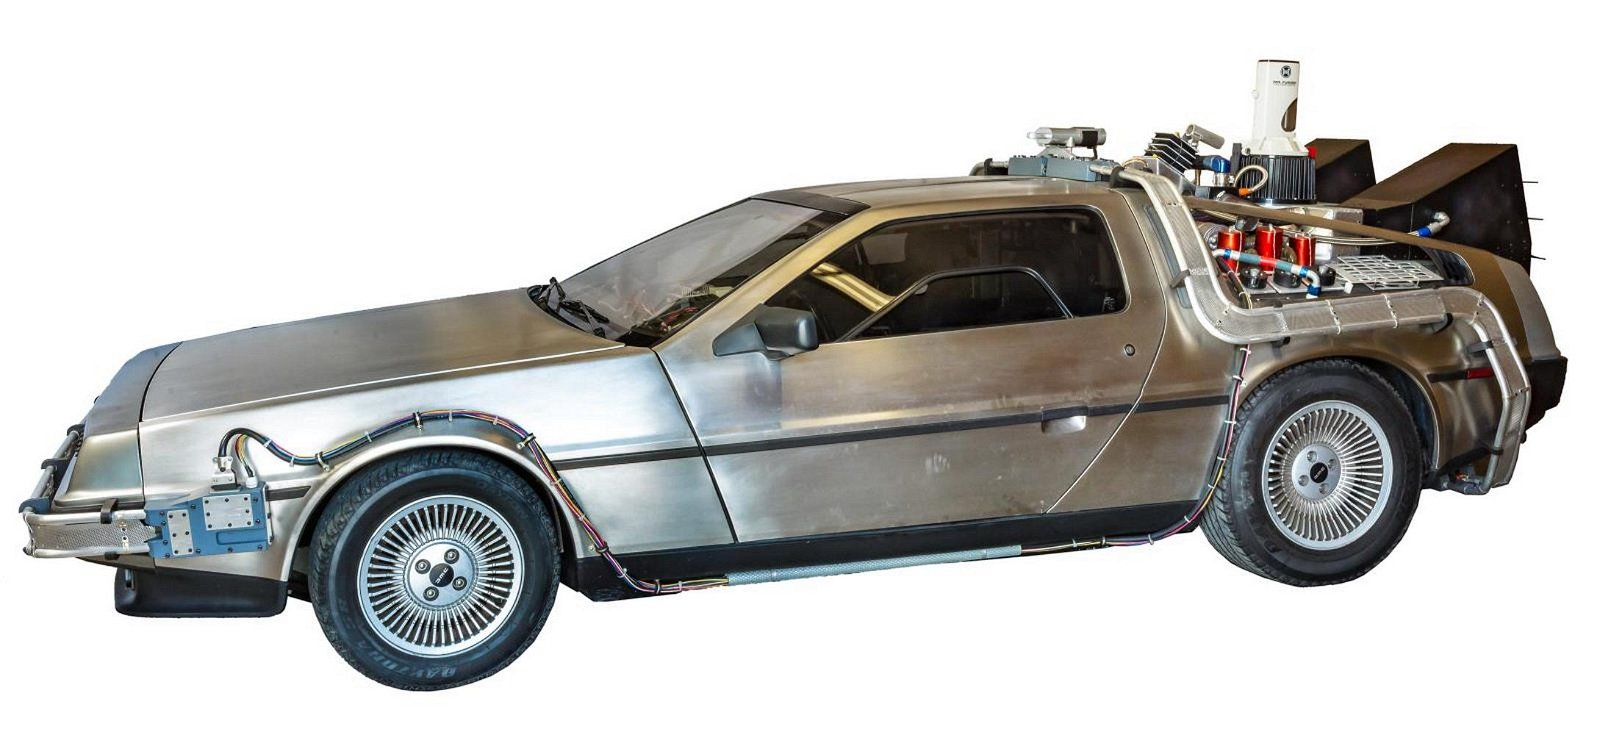 """BACK TO THE FUTURE"" CUSTOMIZED 1981 DELOREAN"